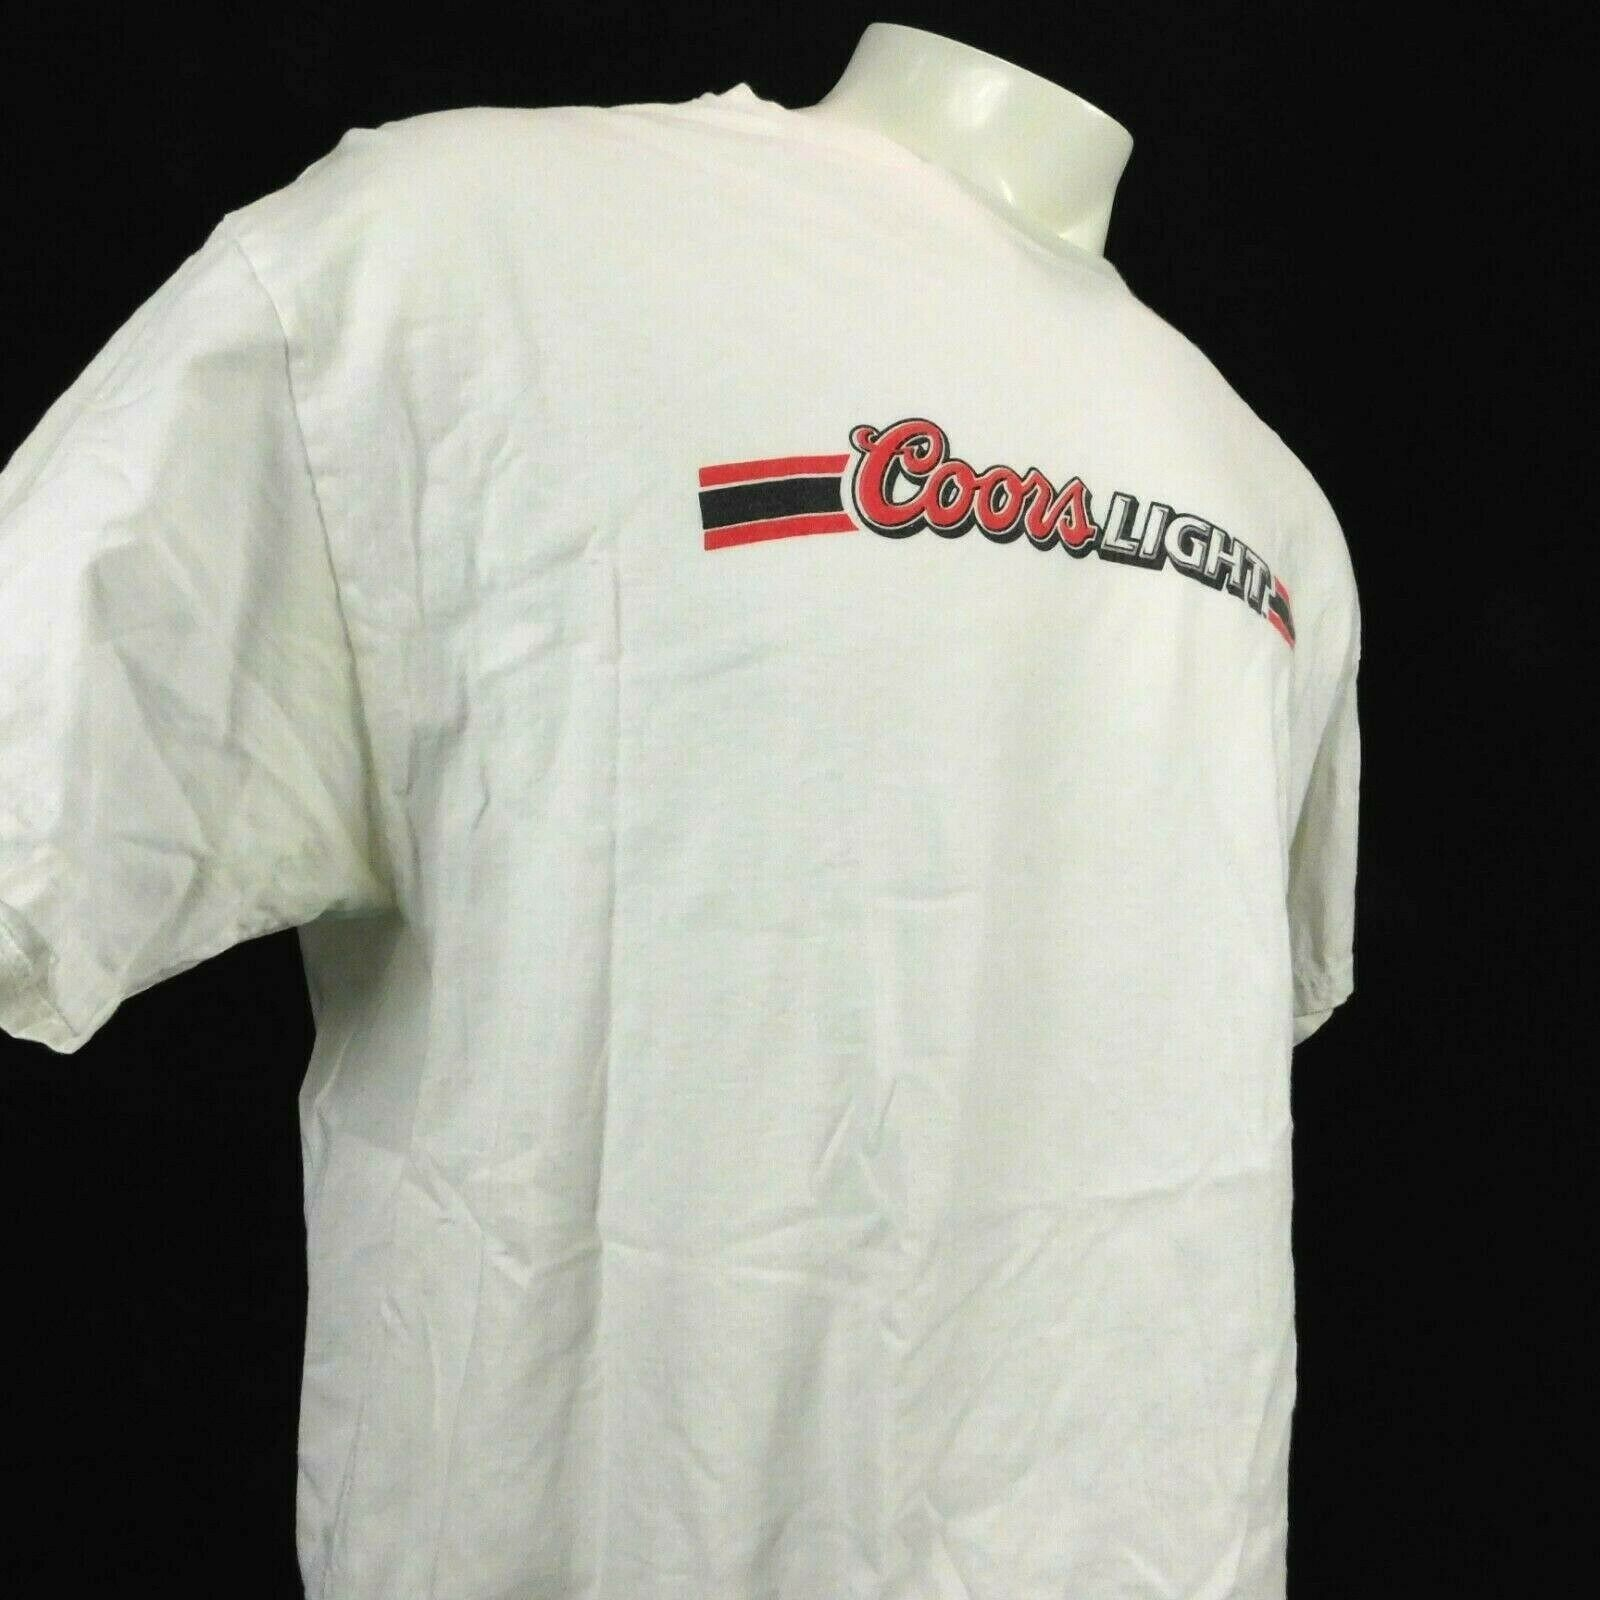 Primary image for Coors Light Beer White Tshirt Sz XL Hanes Heavyweight